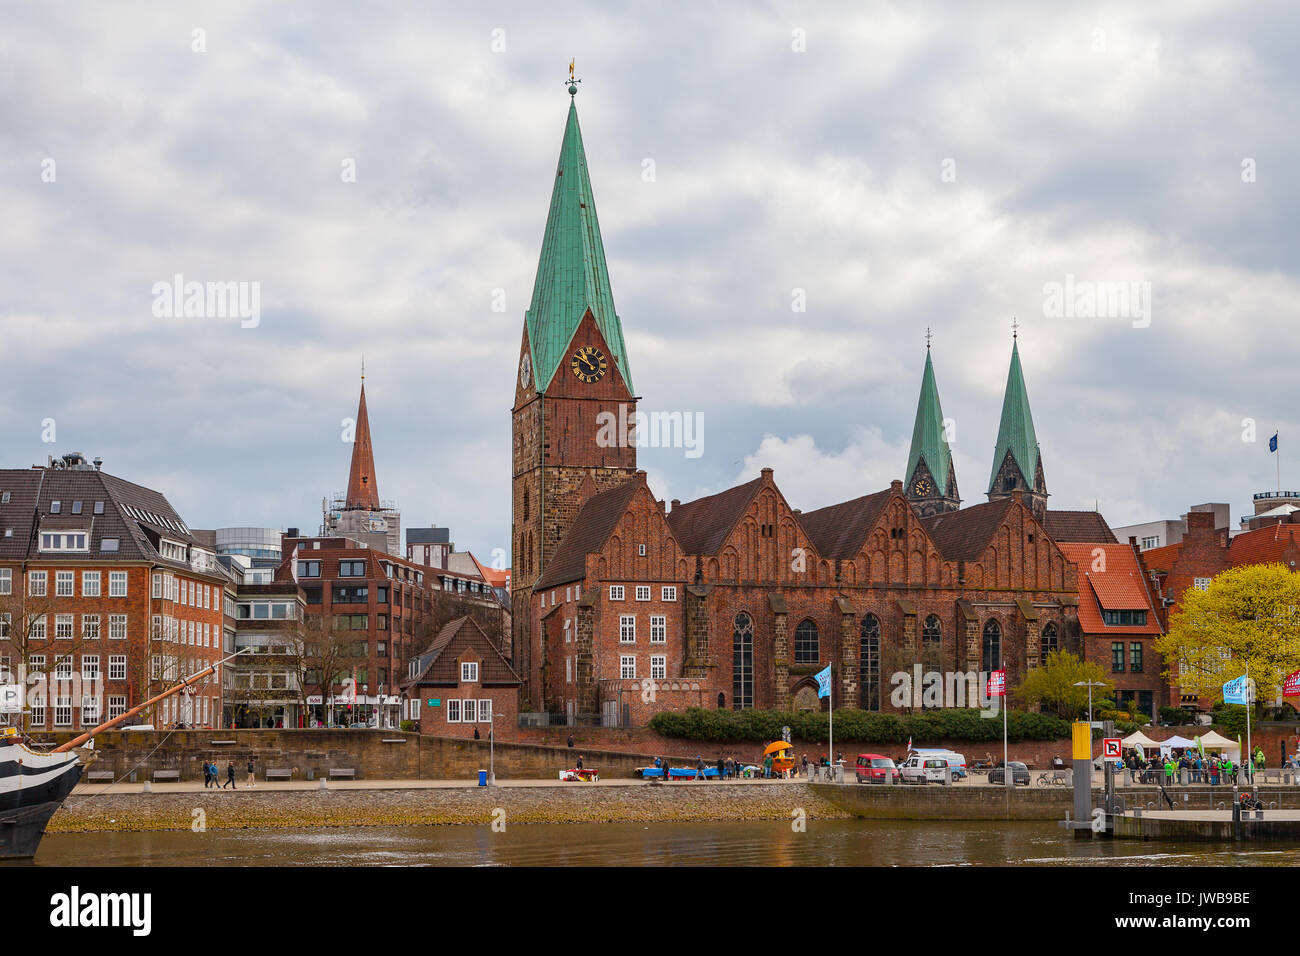 BREMEN, GERMANY - 16 APR 2016: St. Martin Church in old town along Weser river - Stock Image